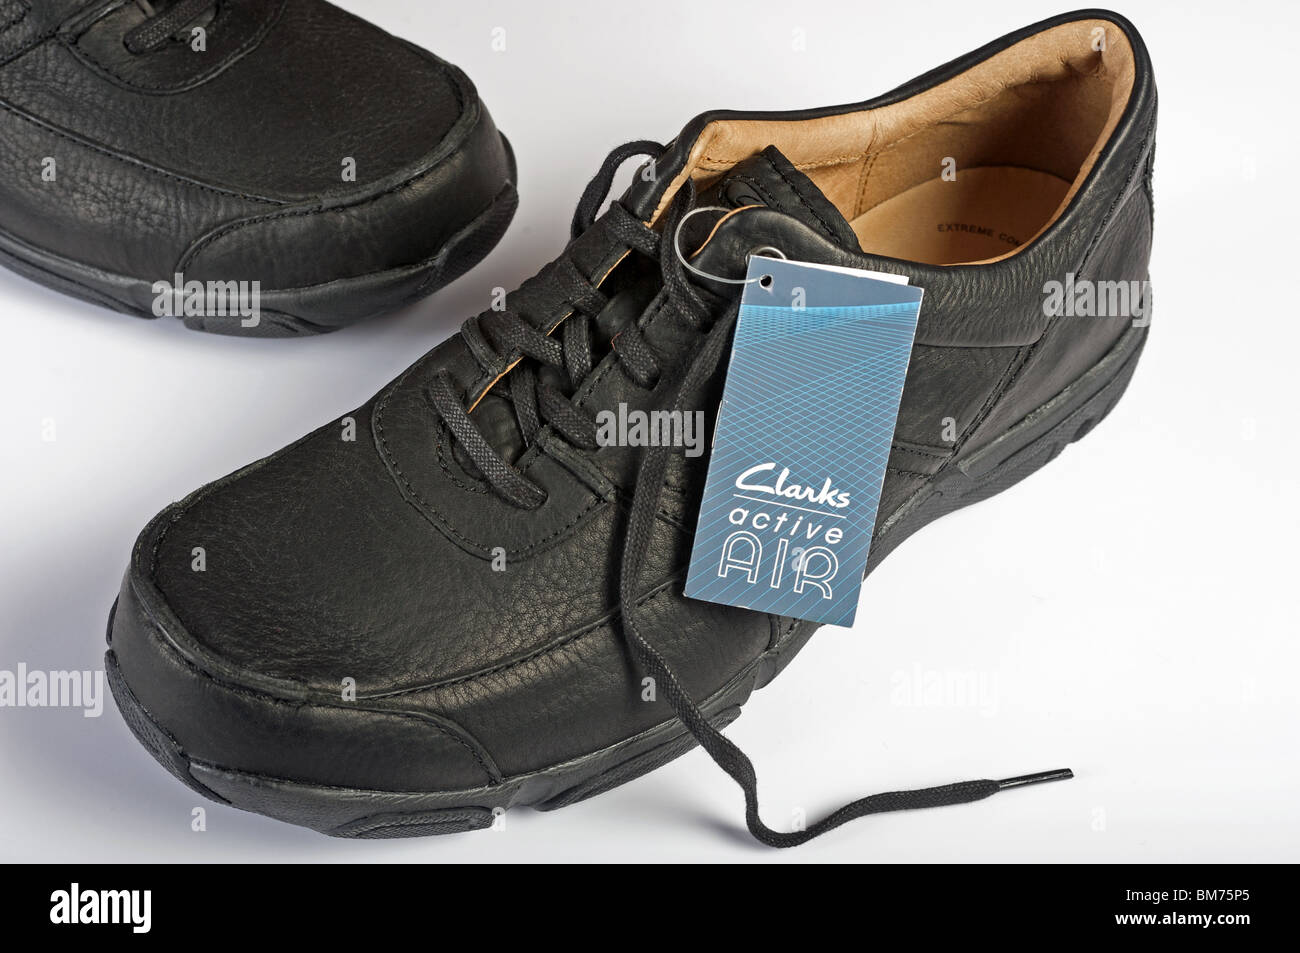 Clarks active air shoes Stock Photo: 29661693 Alamy